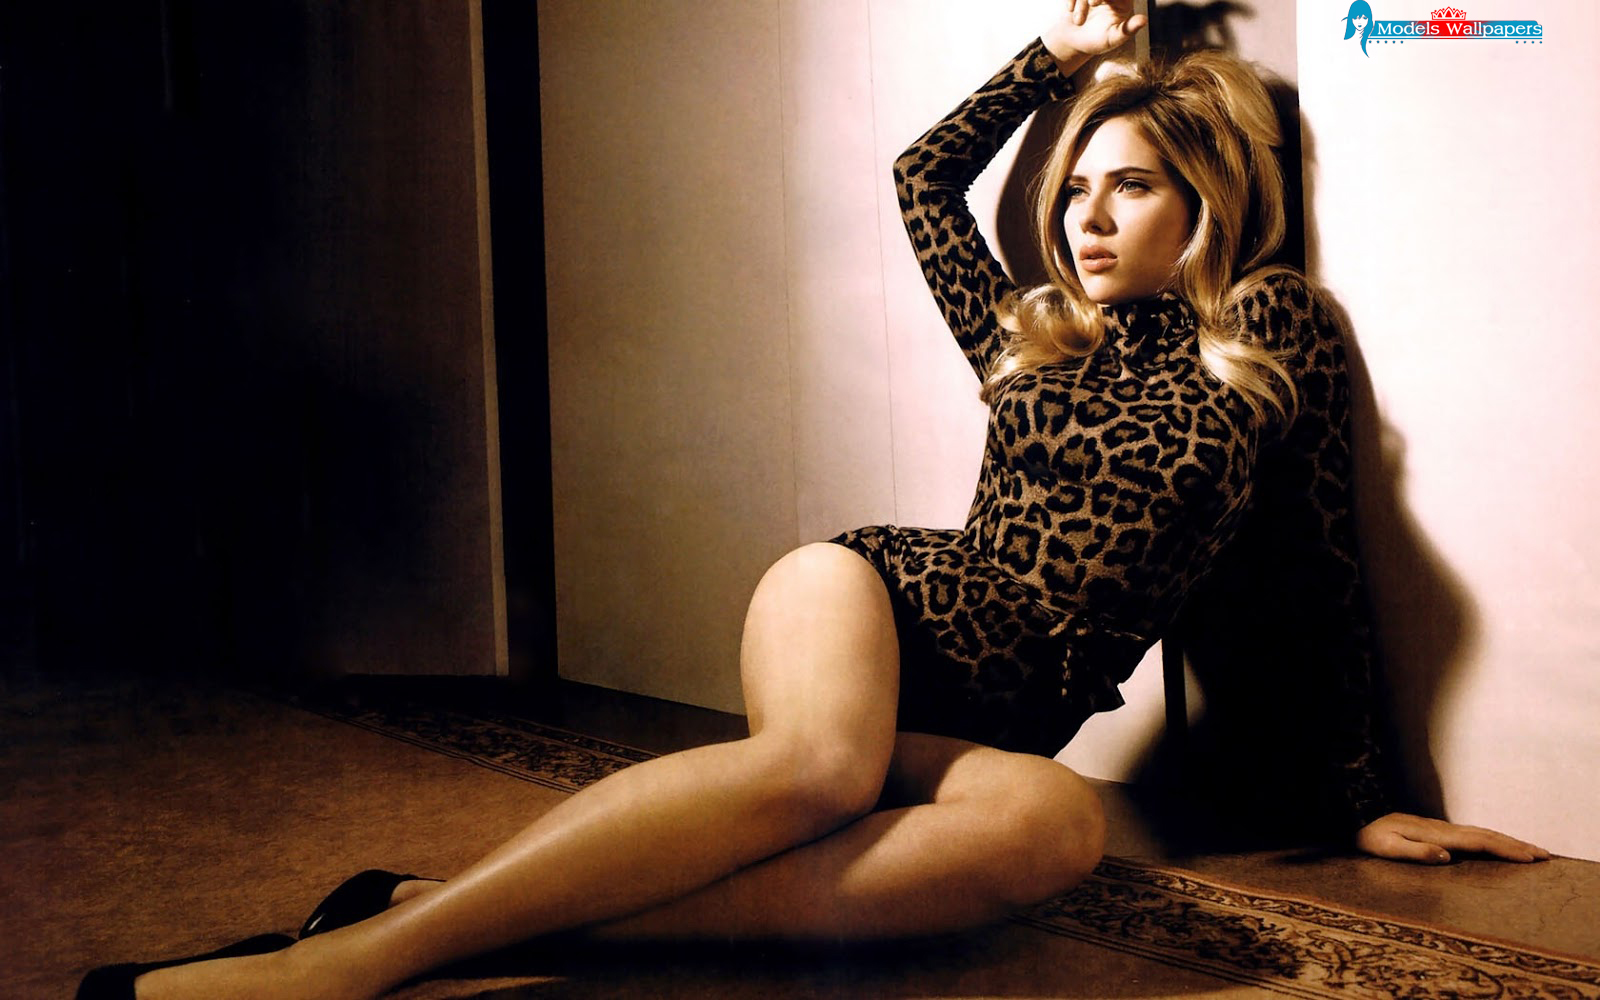 scarlett johansson model - photo #6